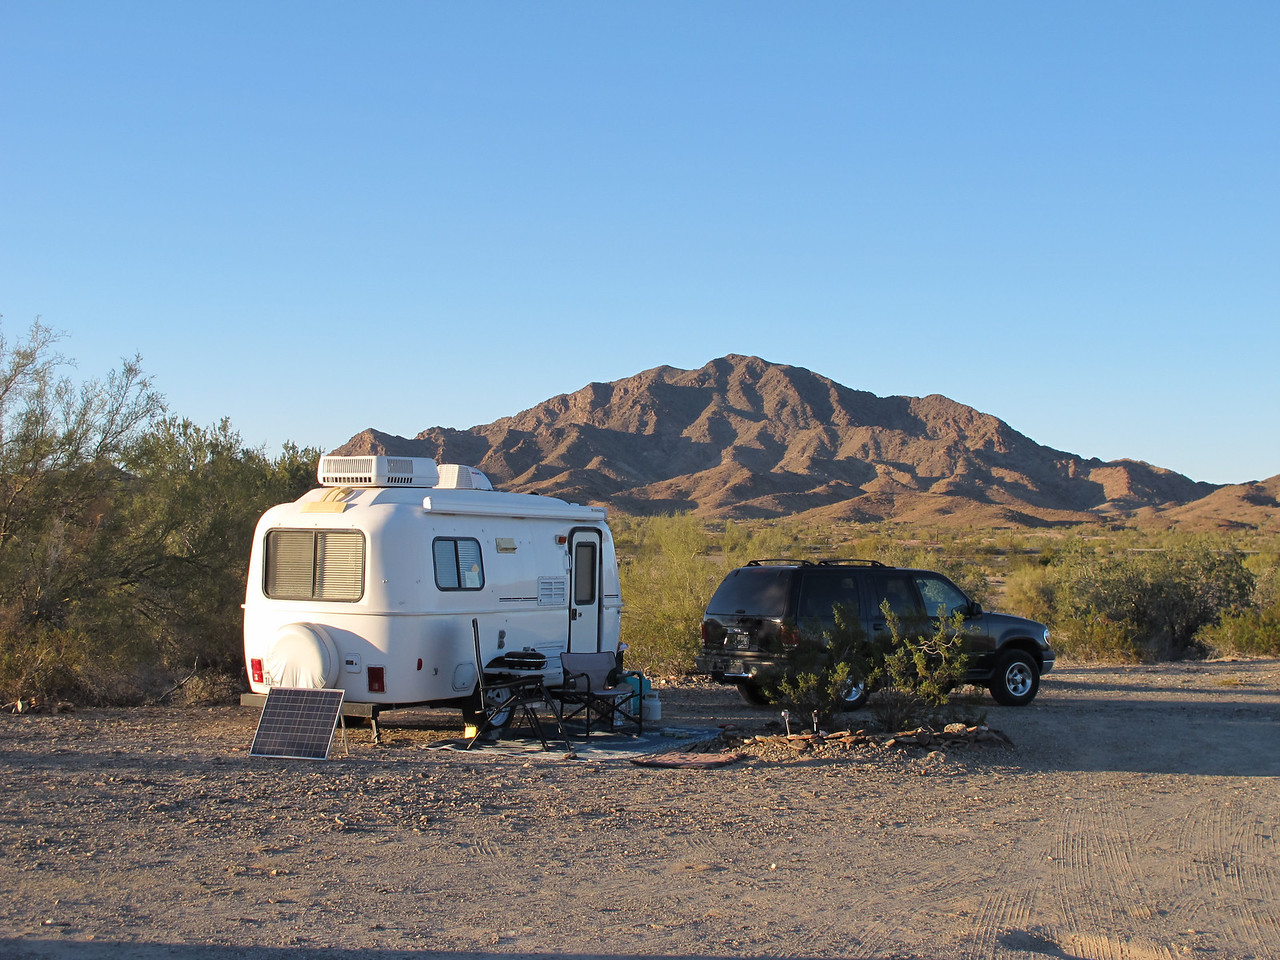 This rig belongs to Diane (Sage). She's a member of a rockhound group and this spot is about a mile from Dome Rock. She and her friends camped here while in Q for the January Rock Show. I stayed overnight here too.